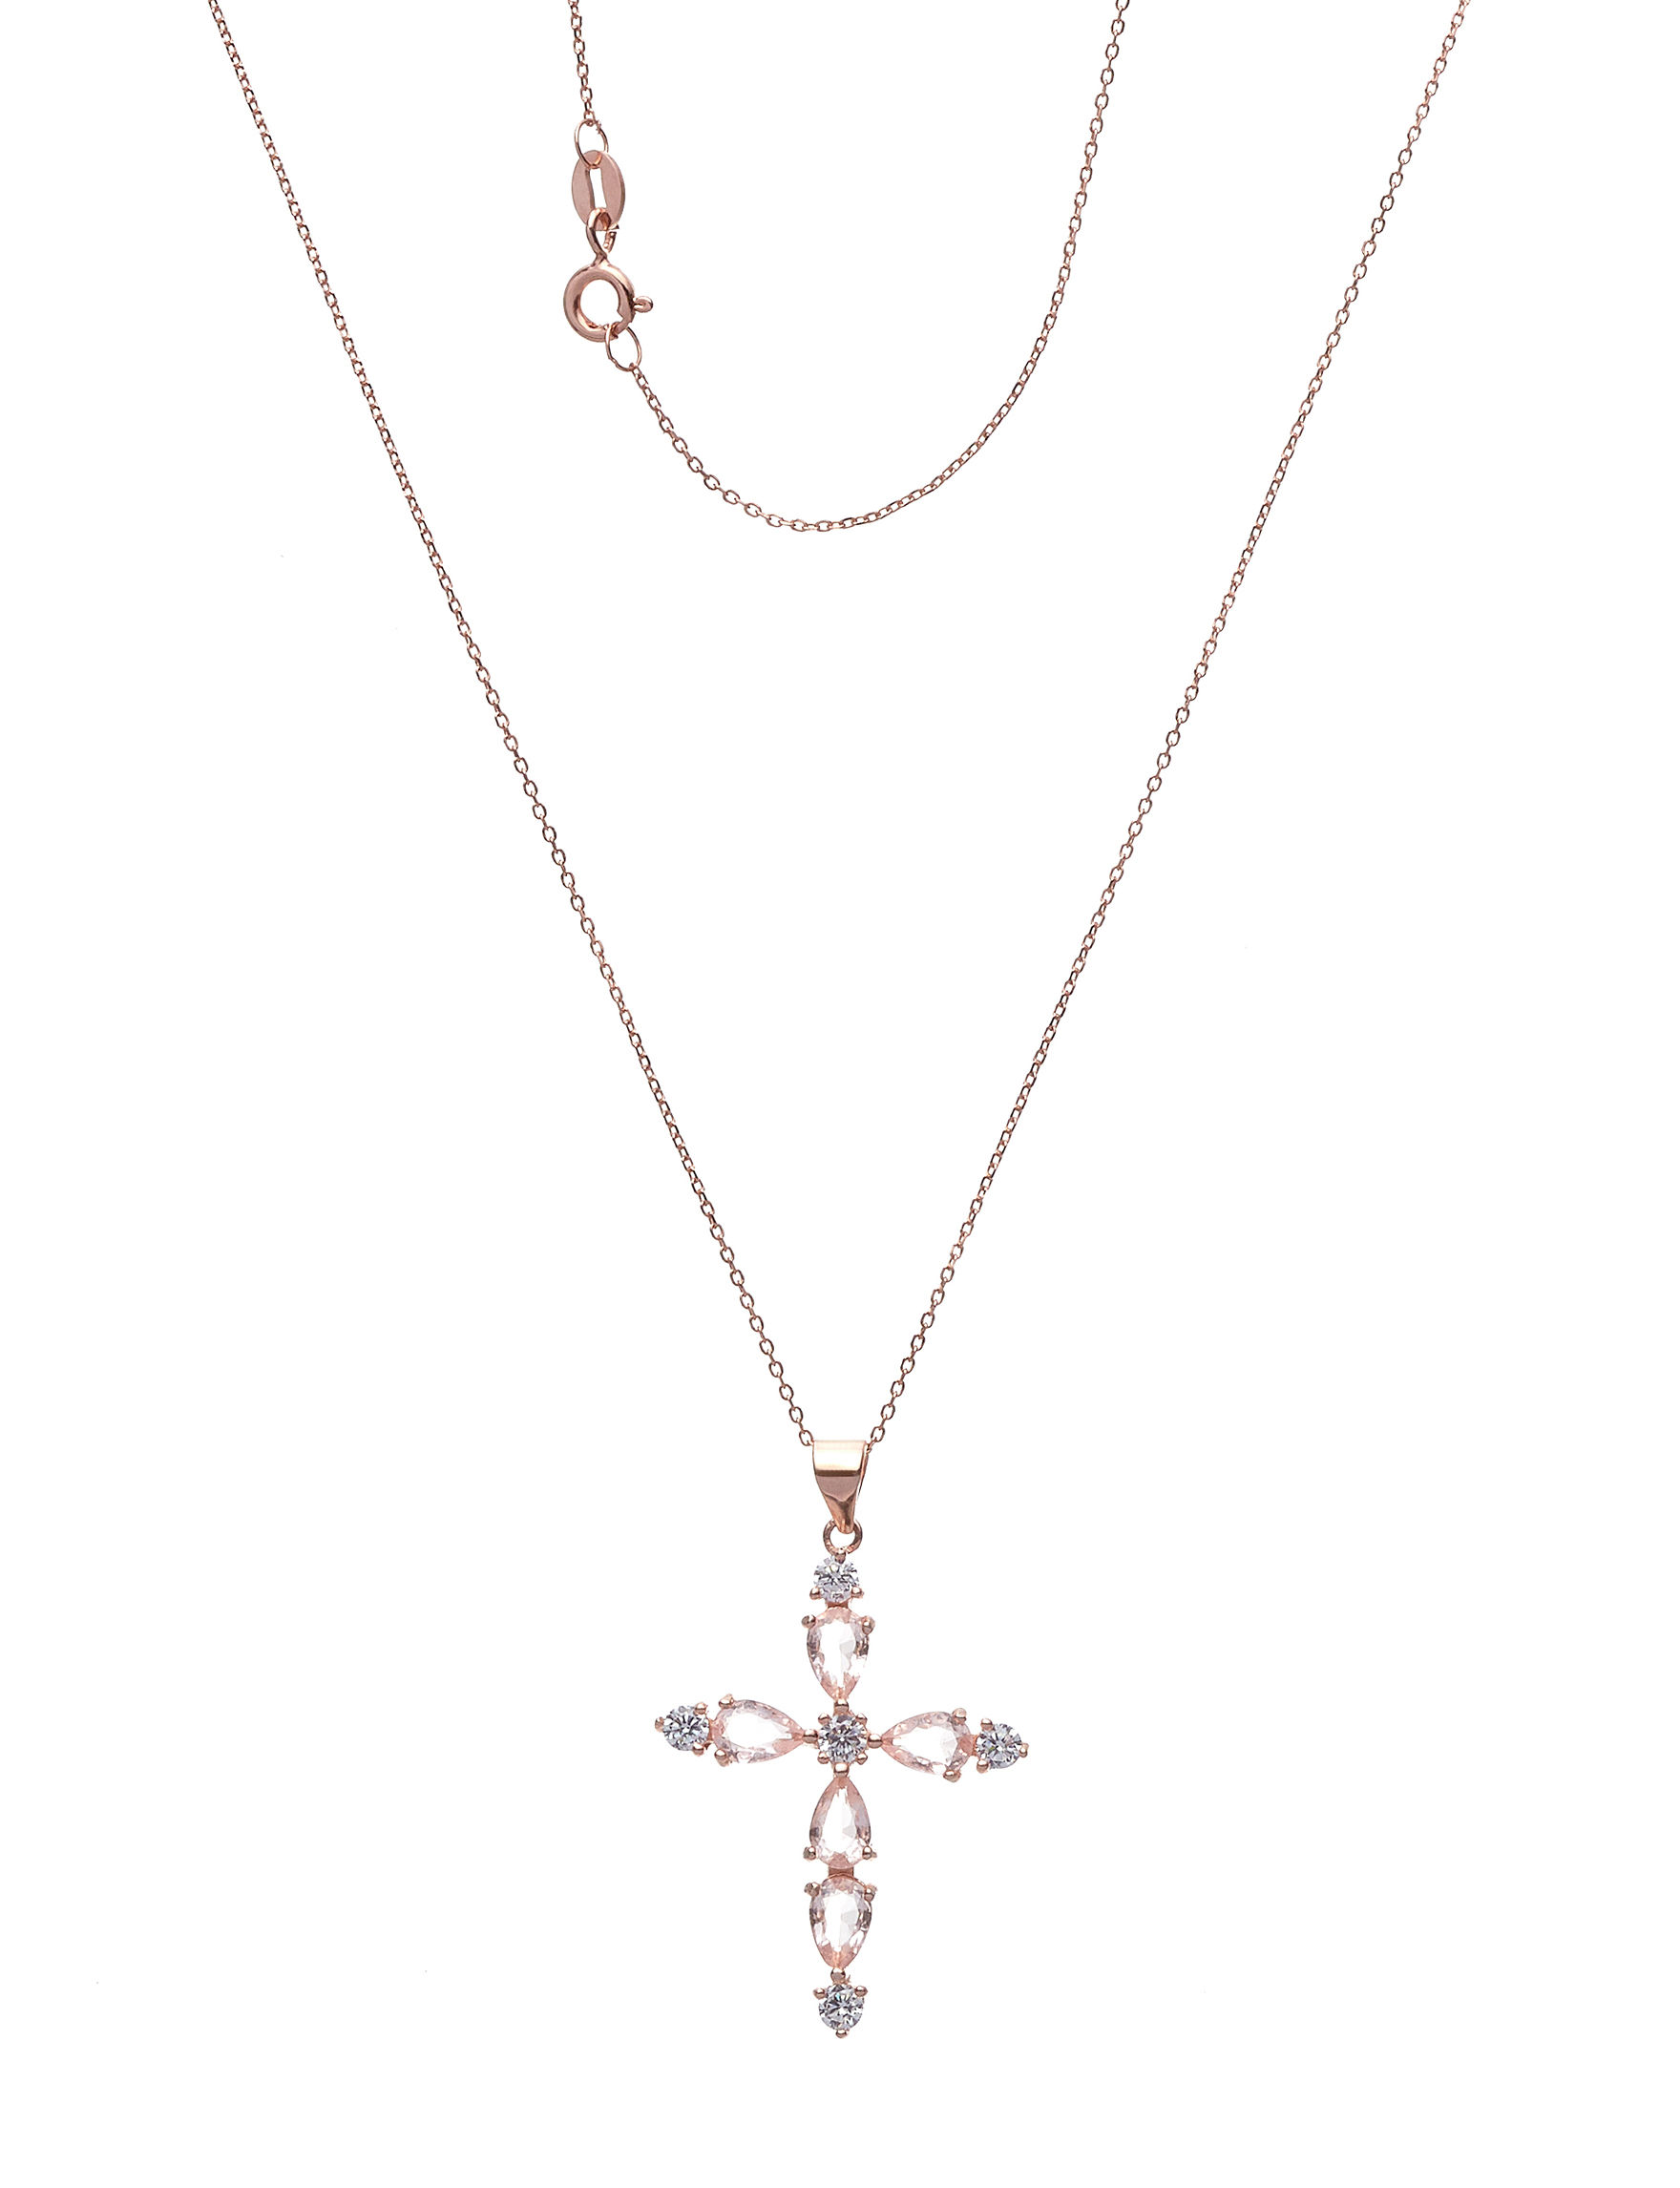 NES Rose Gold / Crystal Necklaces & Pendants Fine Jewelry